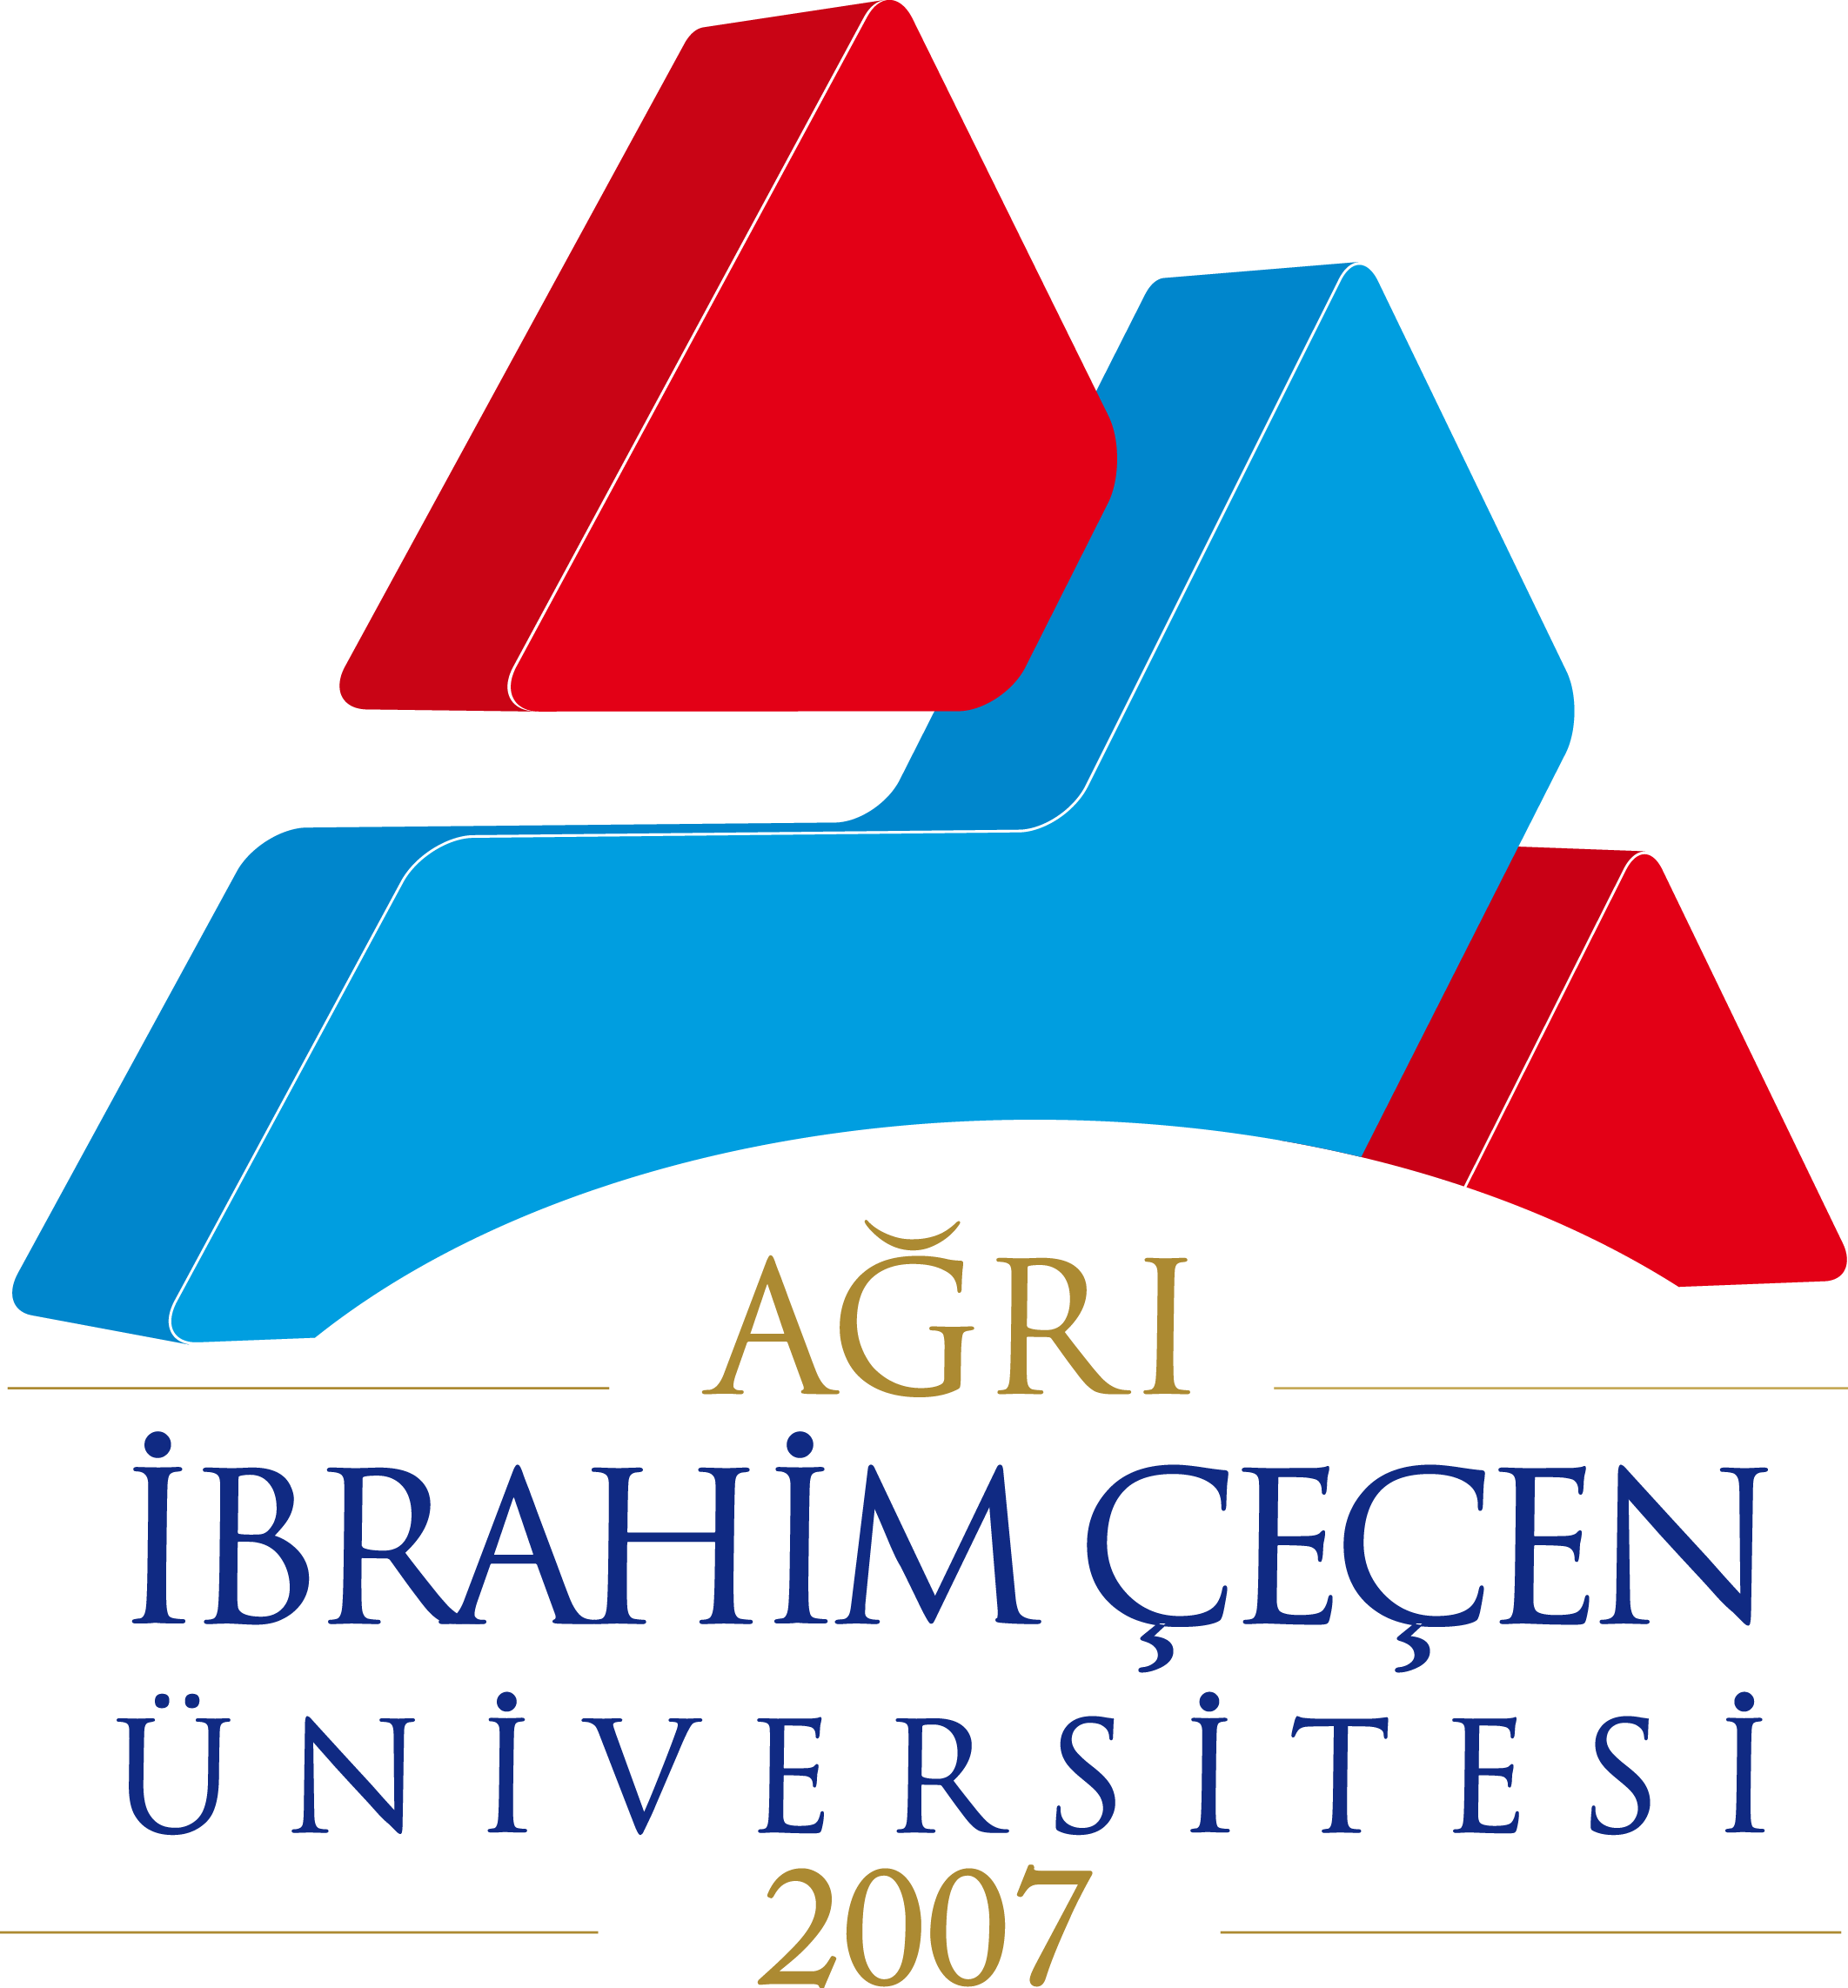 agri universitesi logo